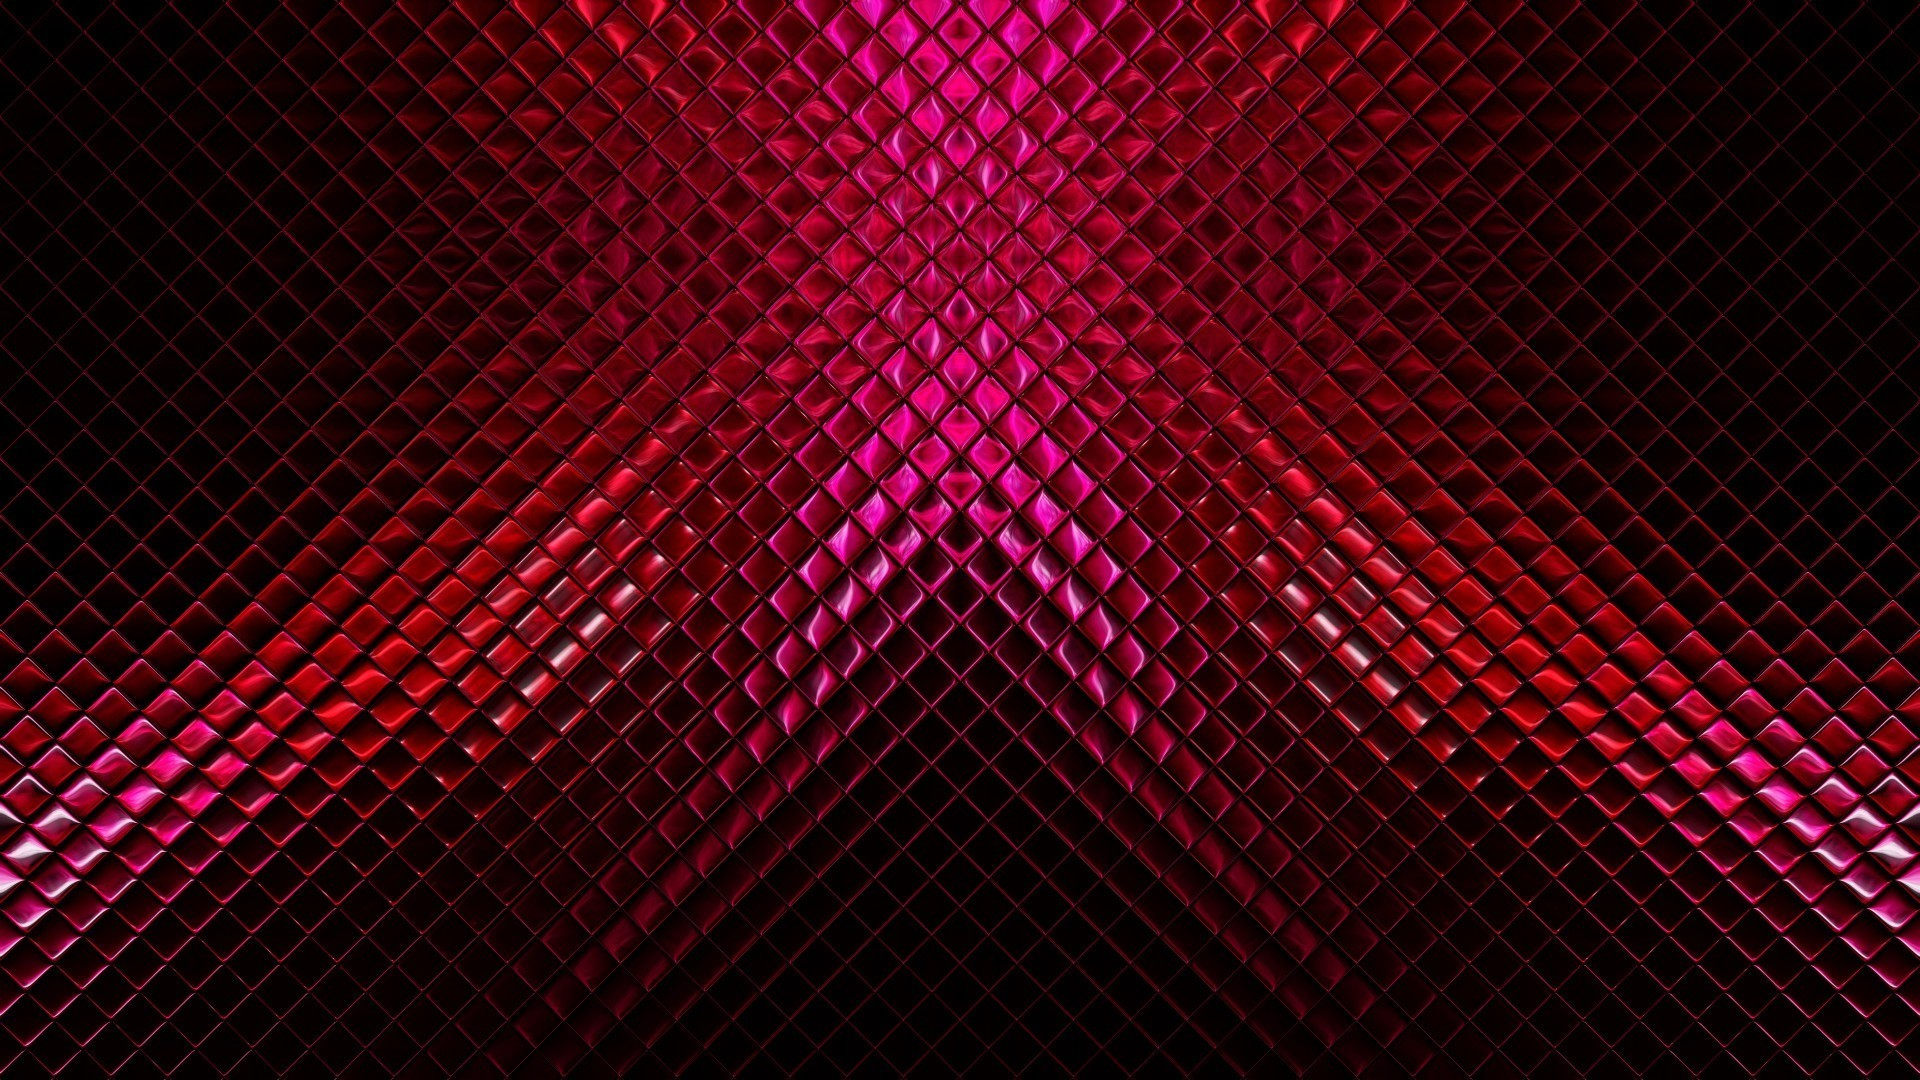 Metal backgrounds hd wallpaper 63 images for Metallic wallpaper